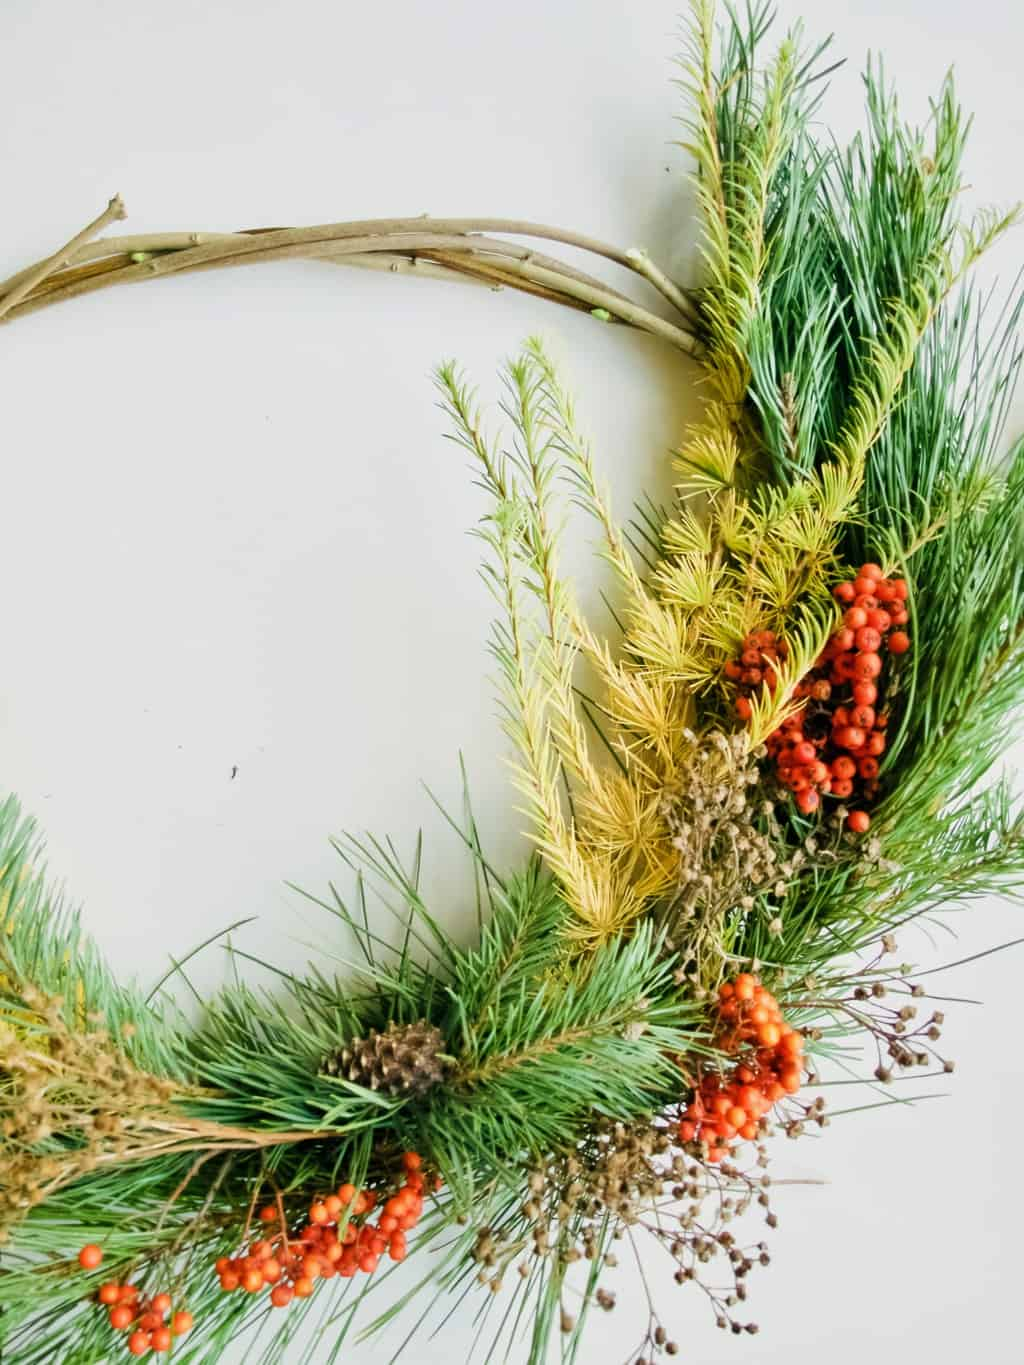 Foraged winter wreath DIY